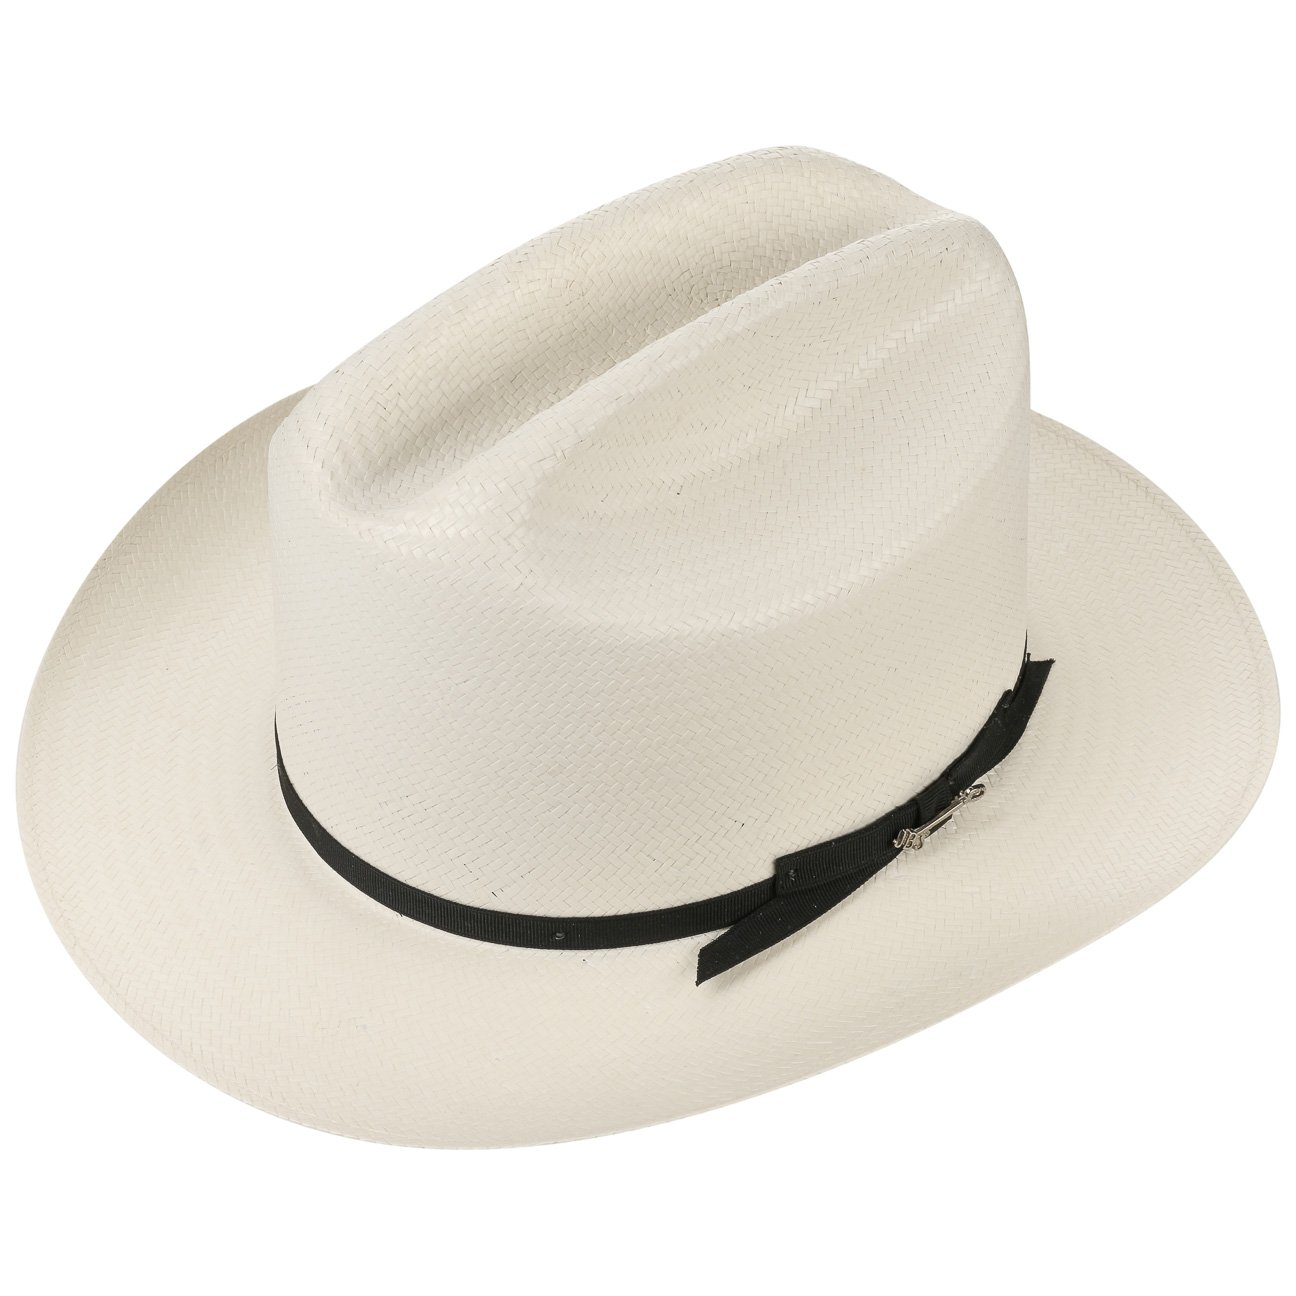 Made in USA Stetson Open Road 6X Western Straw Hat Men